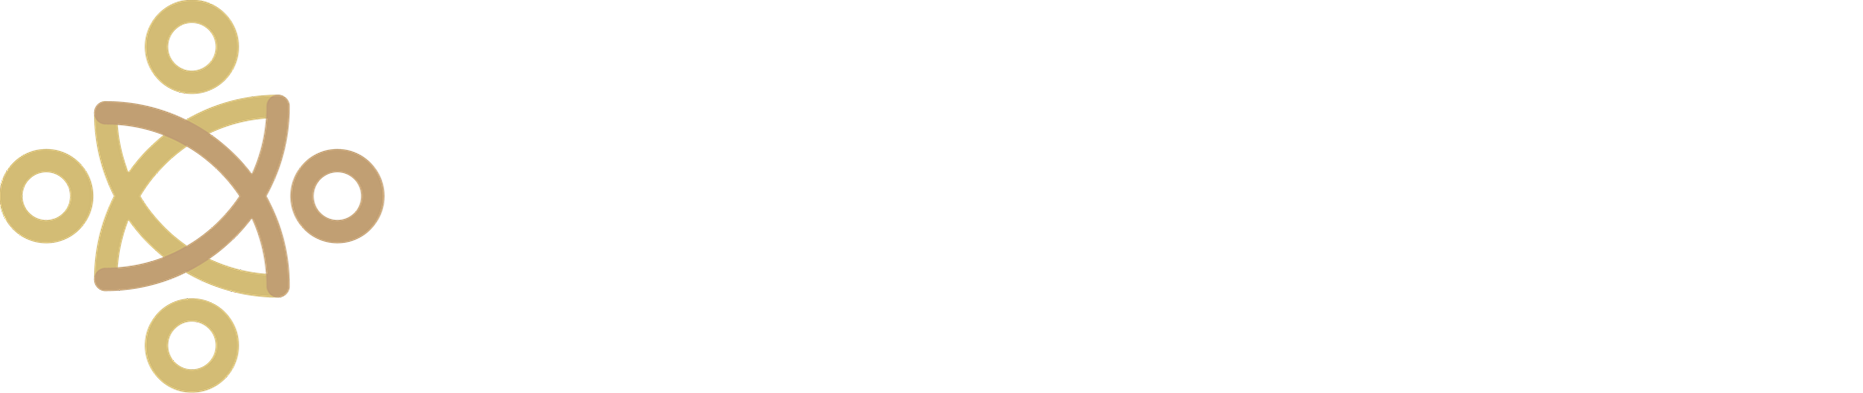 Nardone HR & Management Consulting, LLC